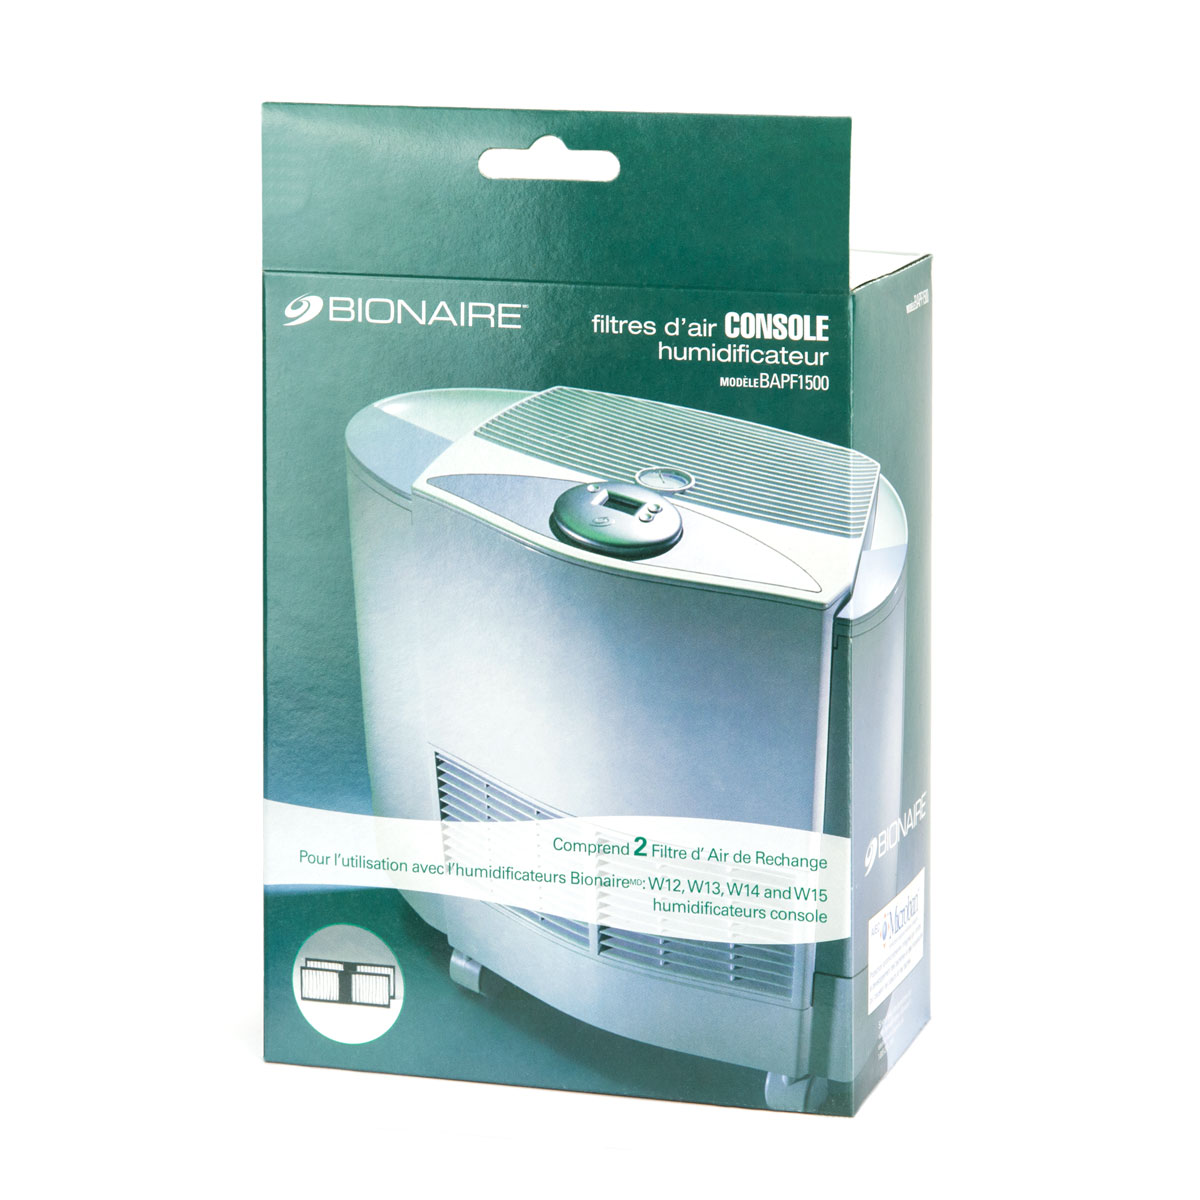 Bionaire® Console Humidifier Air Filter BAPF1500 UC Bionaire  #145E51